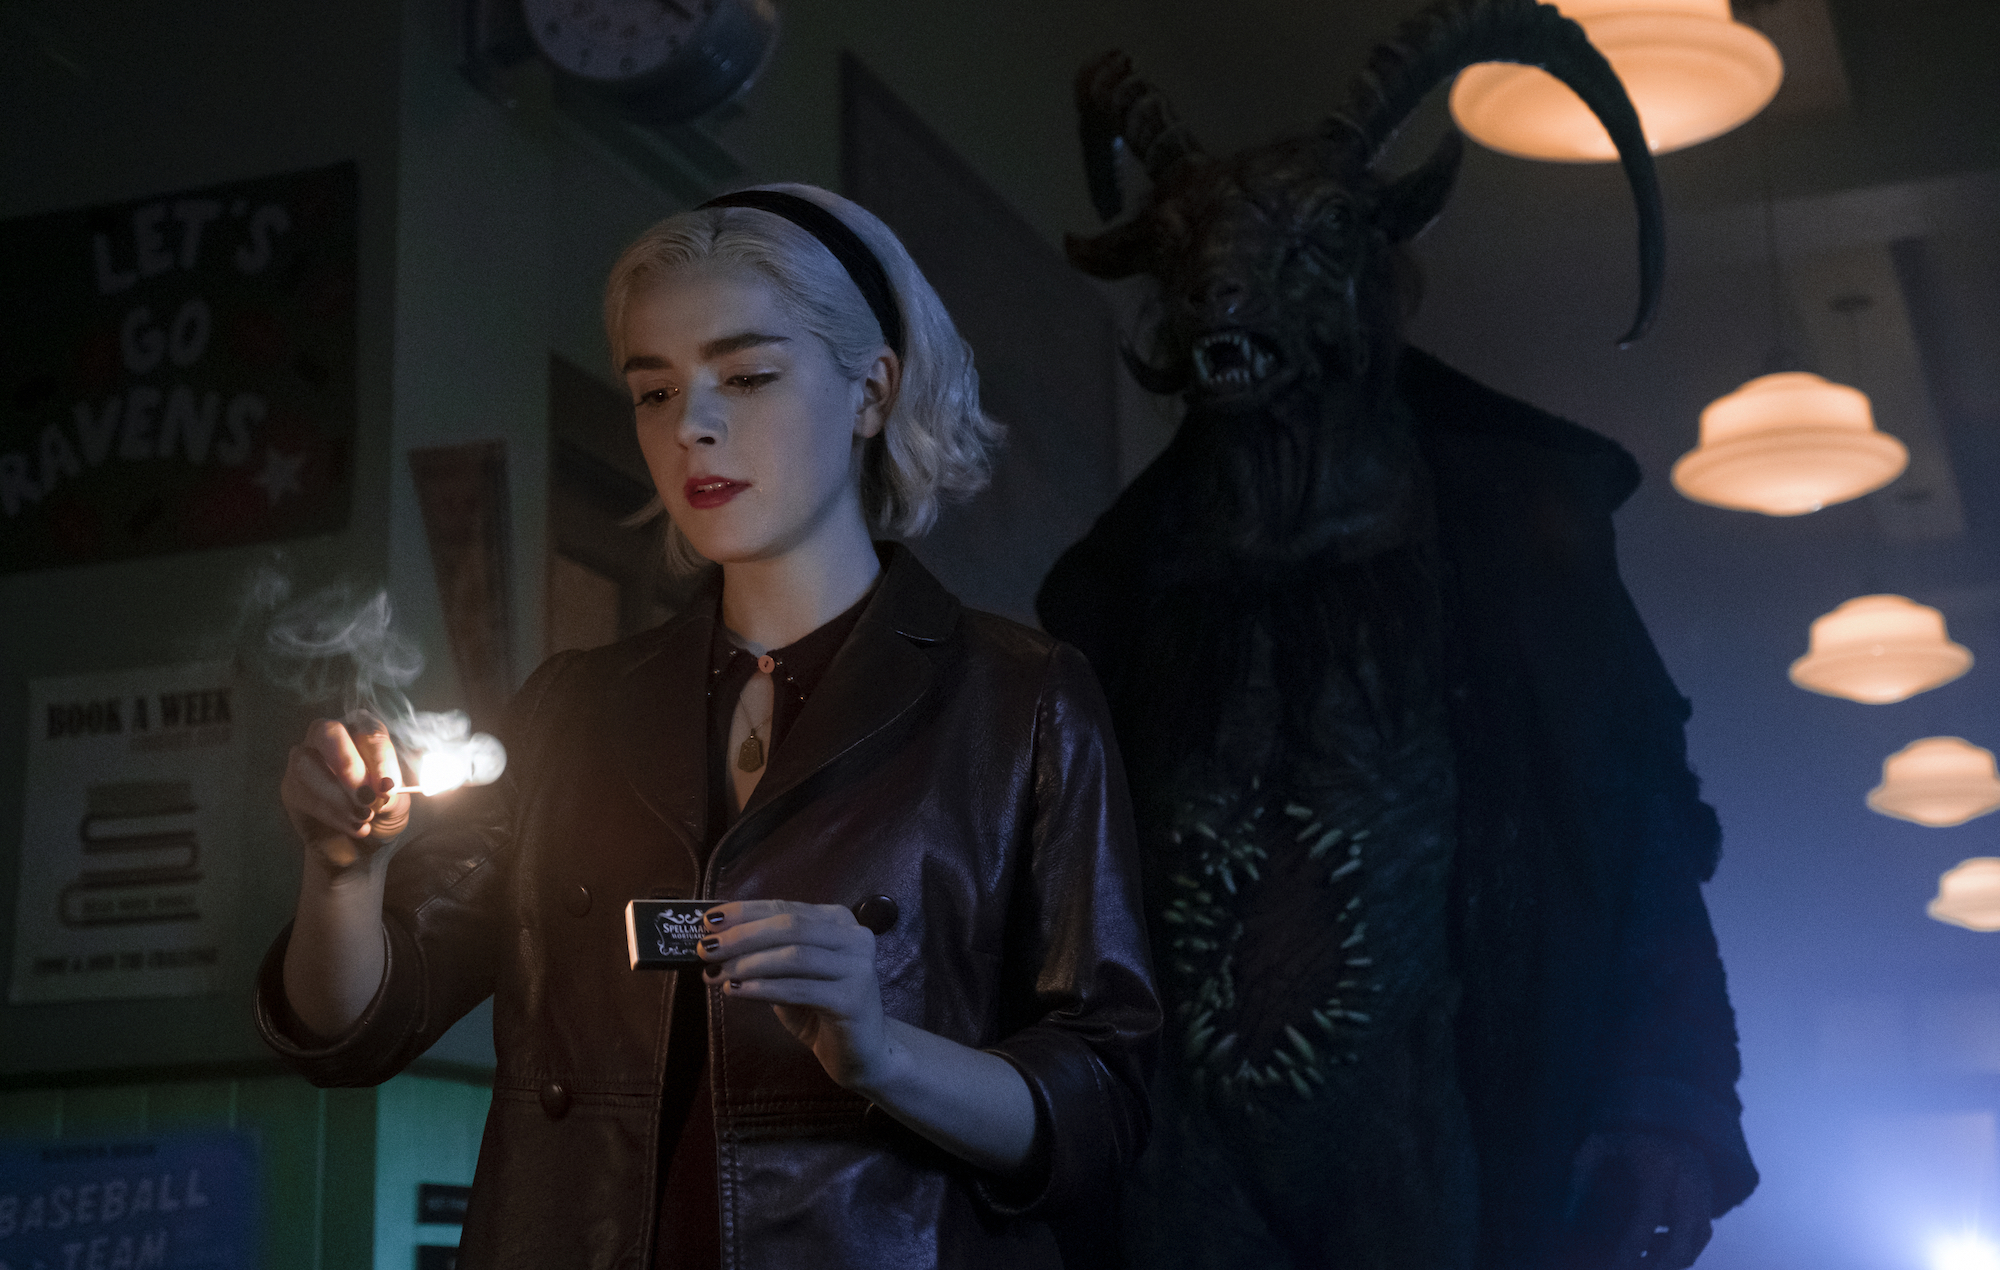 'Chilling Adventures of Sabrina' axed by Netflix ahead of season 4